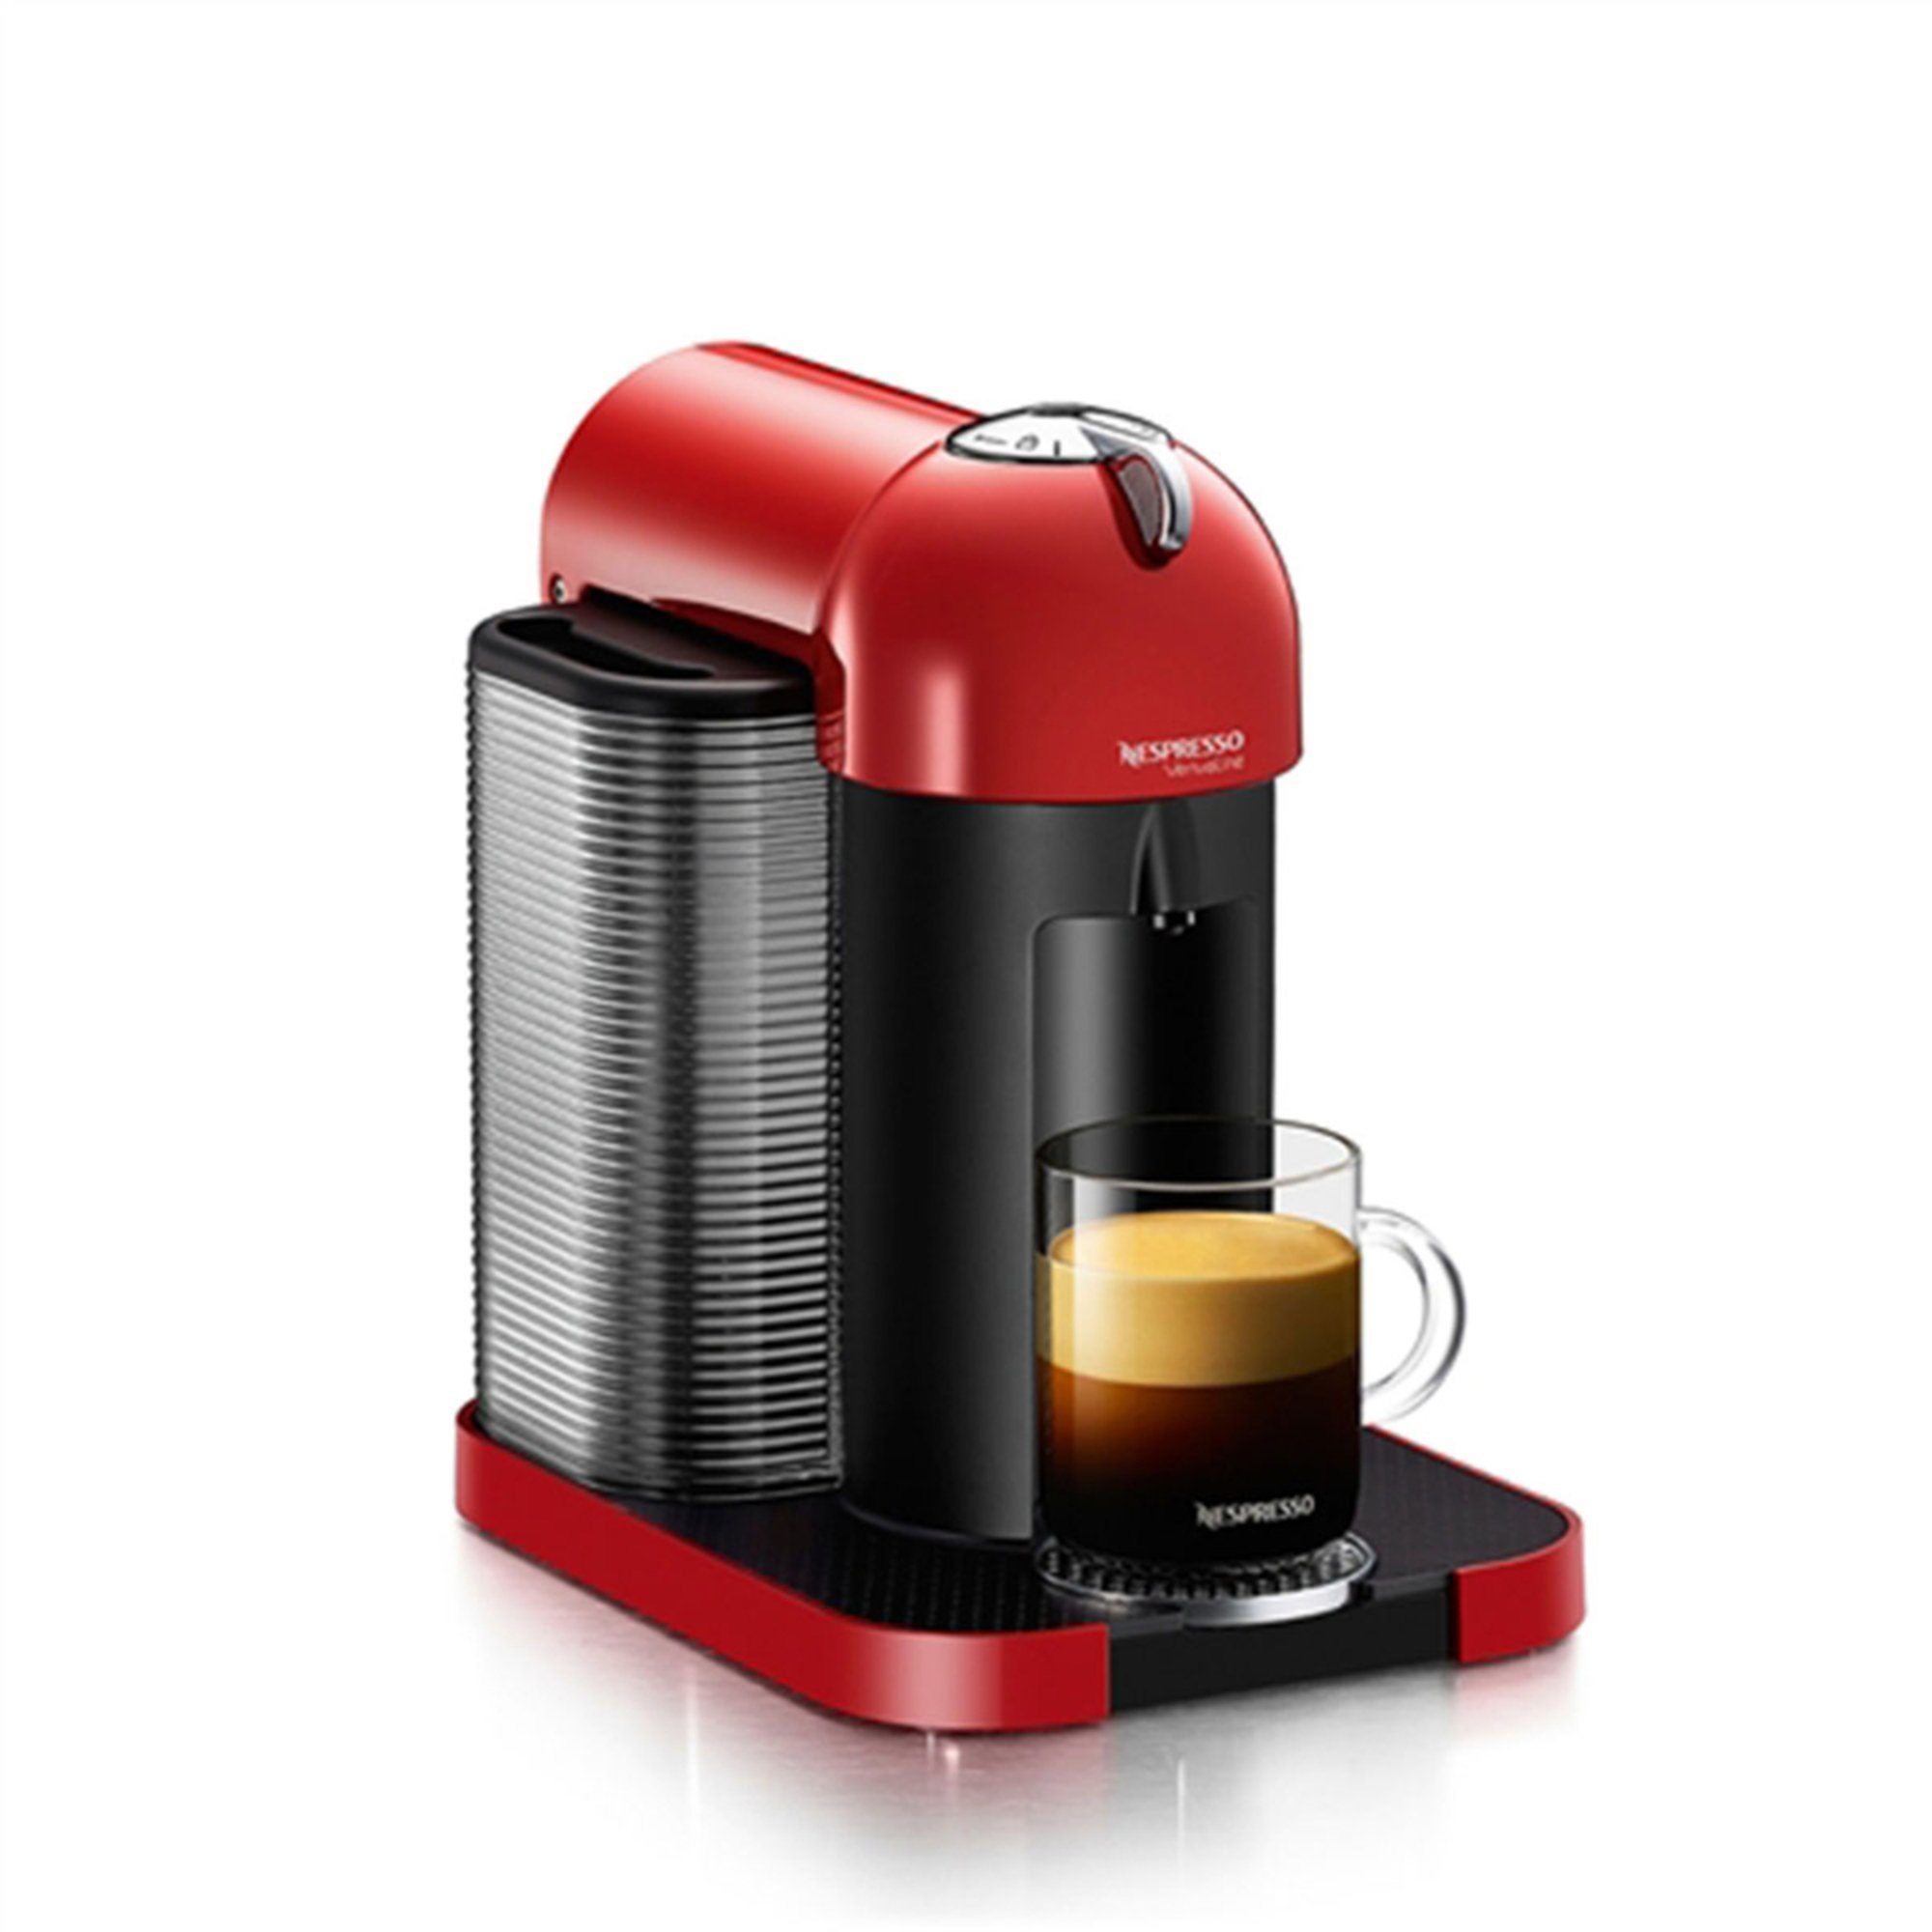 Nespresso Espresso Vertuoline, Red (gca1-us-re-ne) Single-serve Coffee Makers For The Home ...